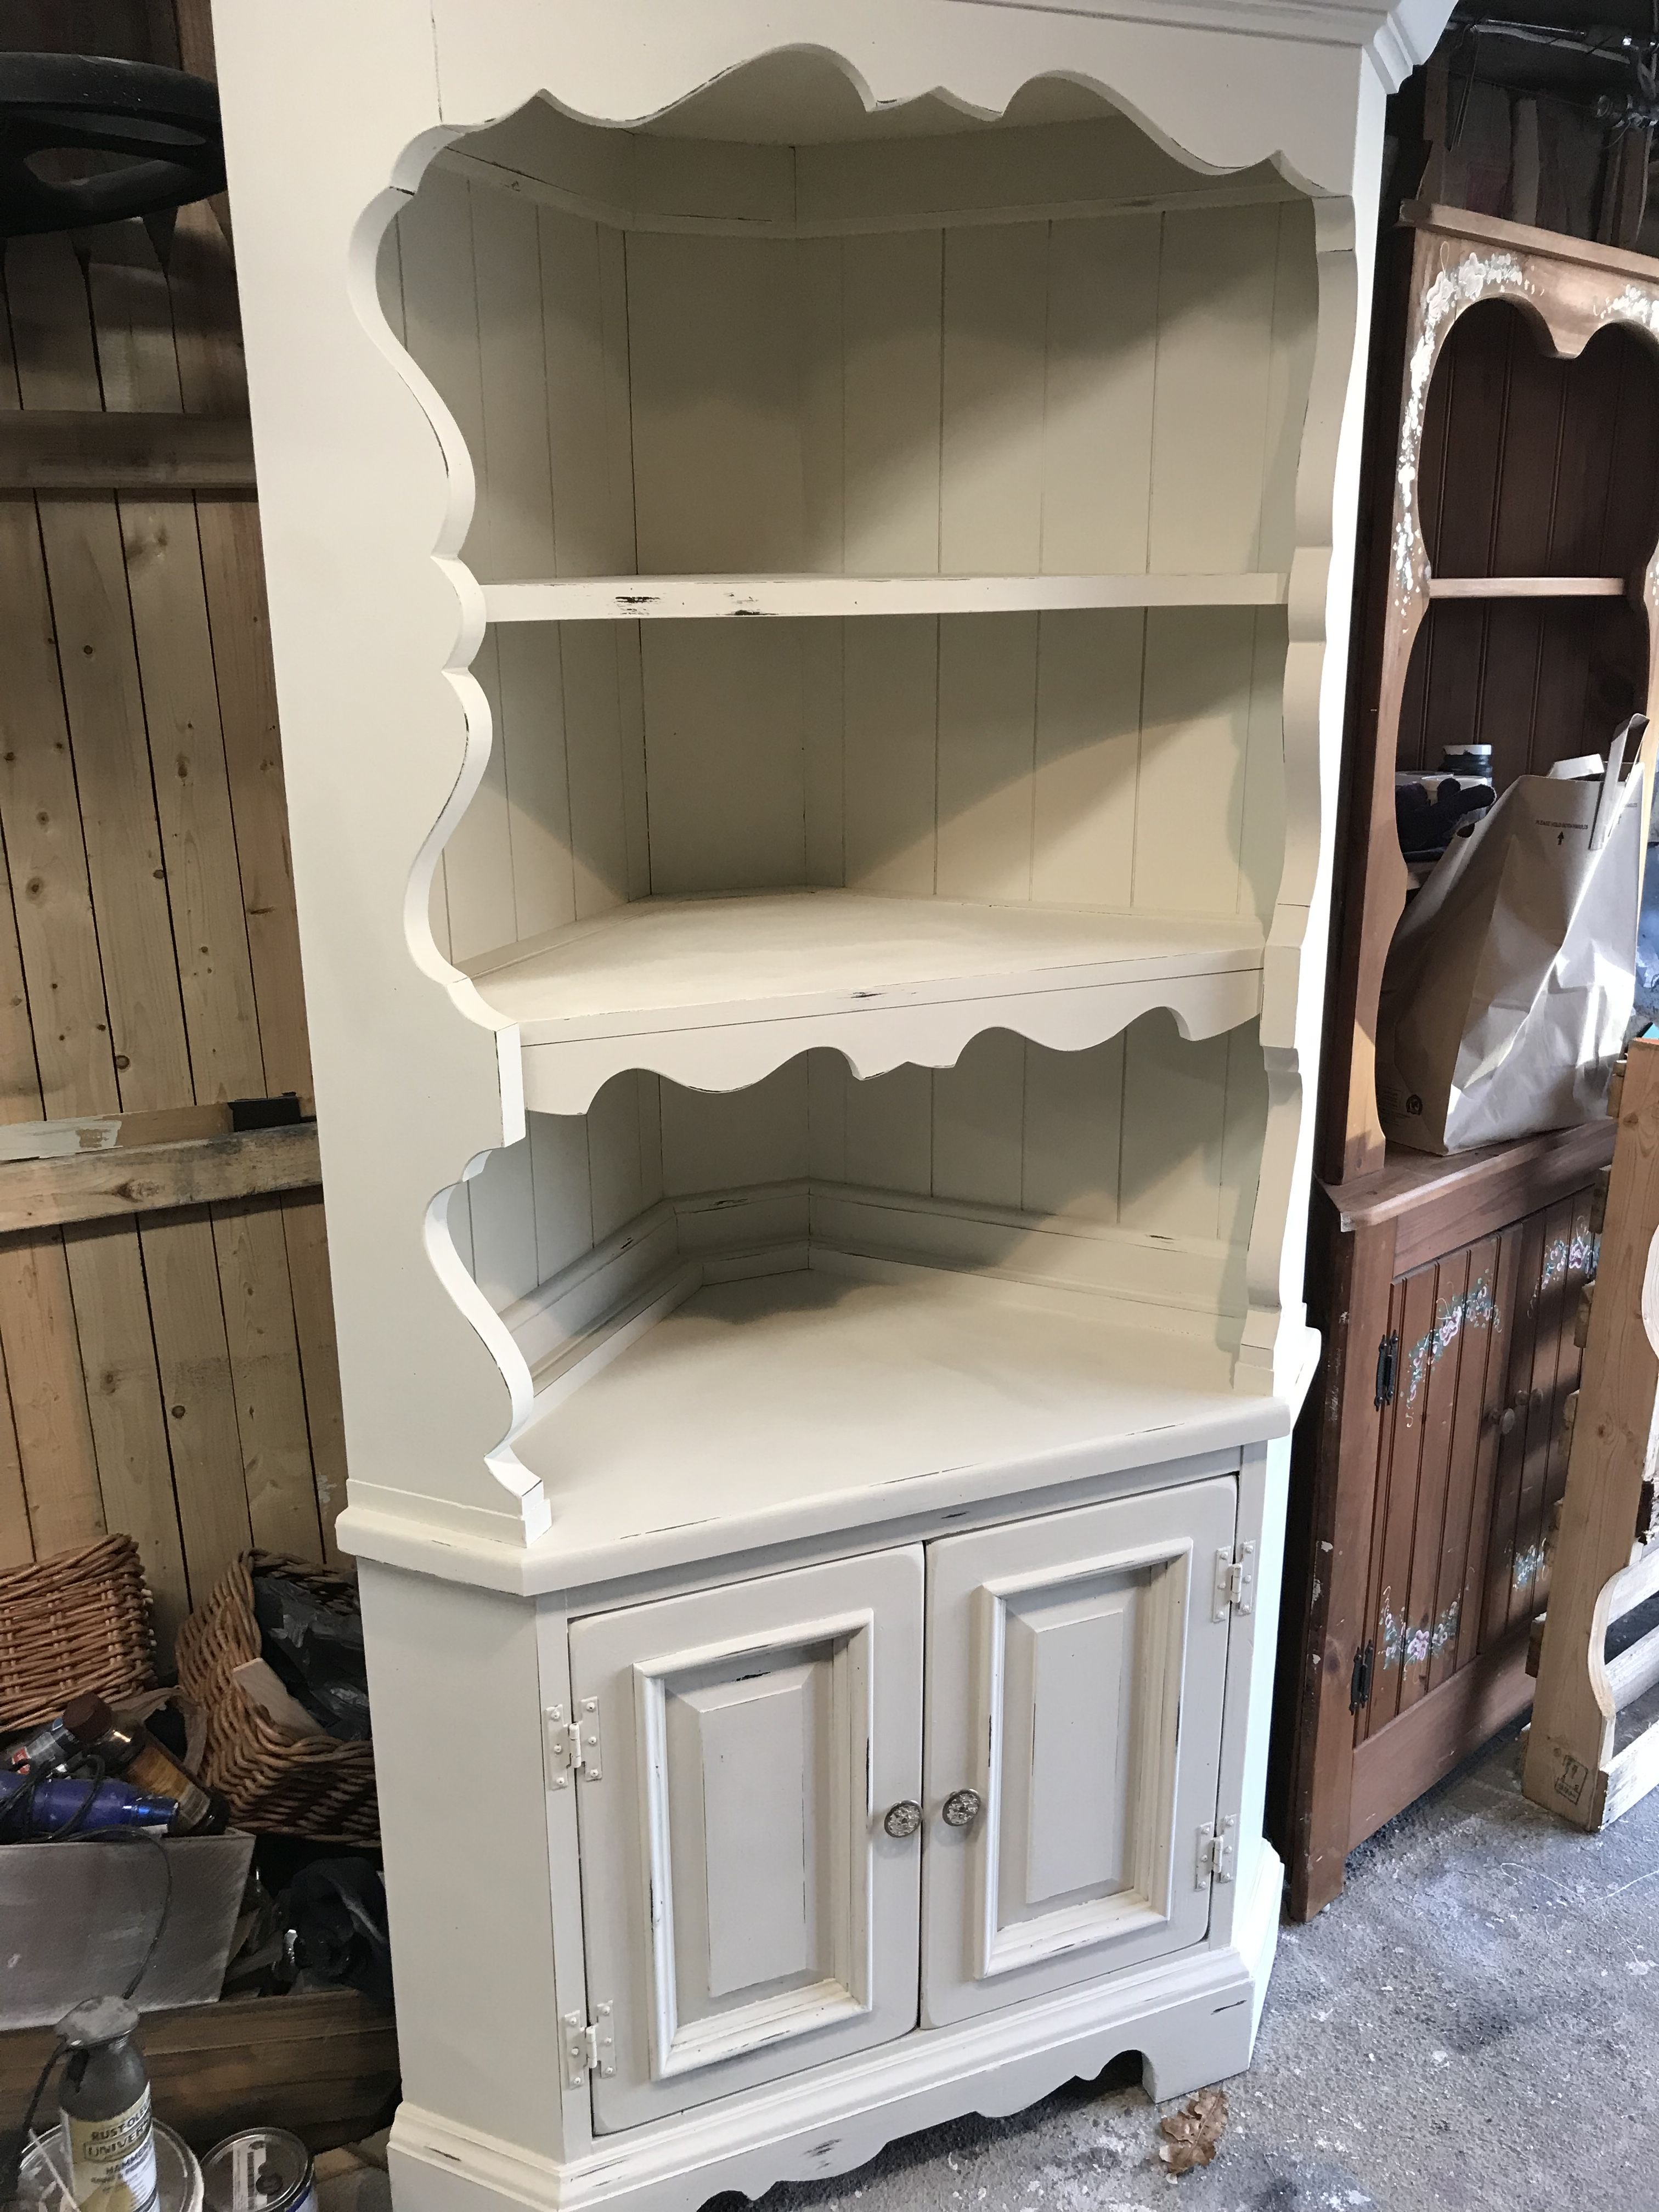 cabinet awesome hutch corner beautifying storage decorating size full awesomea for concept china ideasrepurposed cabinets of refinishing diy ideas painting rustic pictures